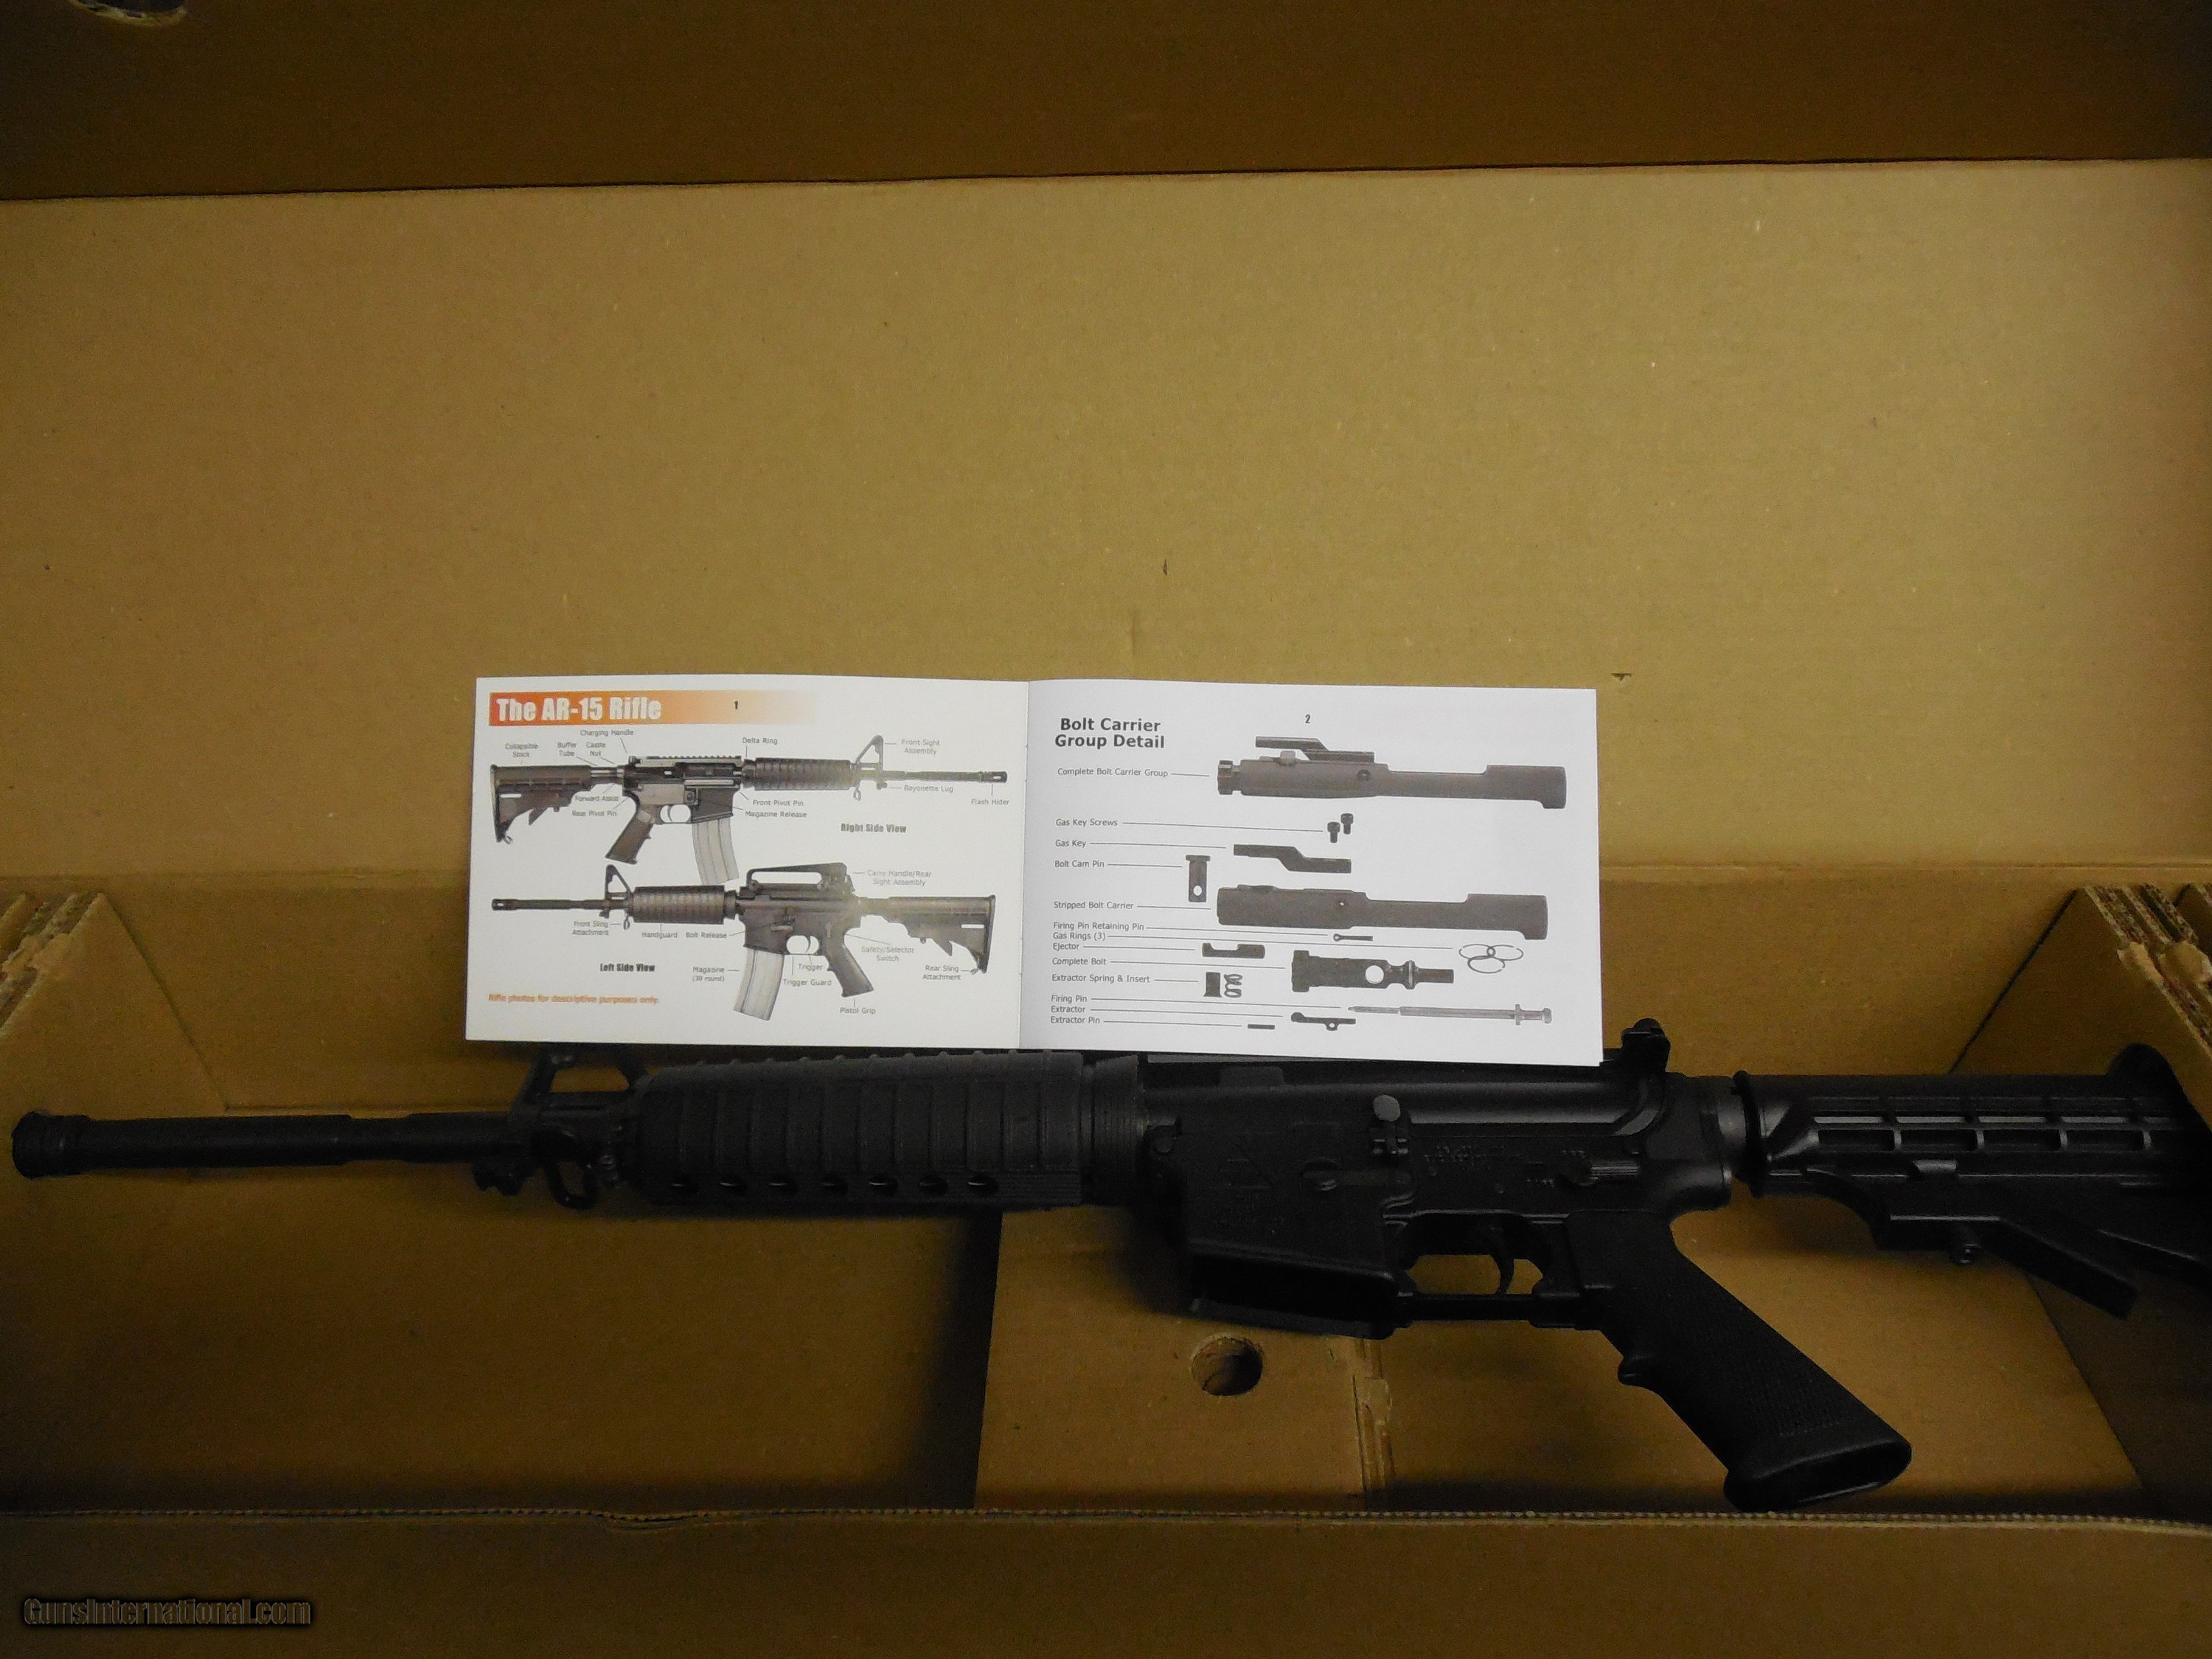 Ar 15 Delton 316 A3 Carbine 16 Barrel 5 56 Nato 30 1 Round Magazine Boyonet Lug 5 Position Stock Have Two With Consecuitve Numbers